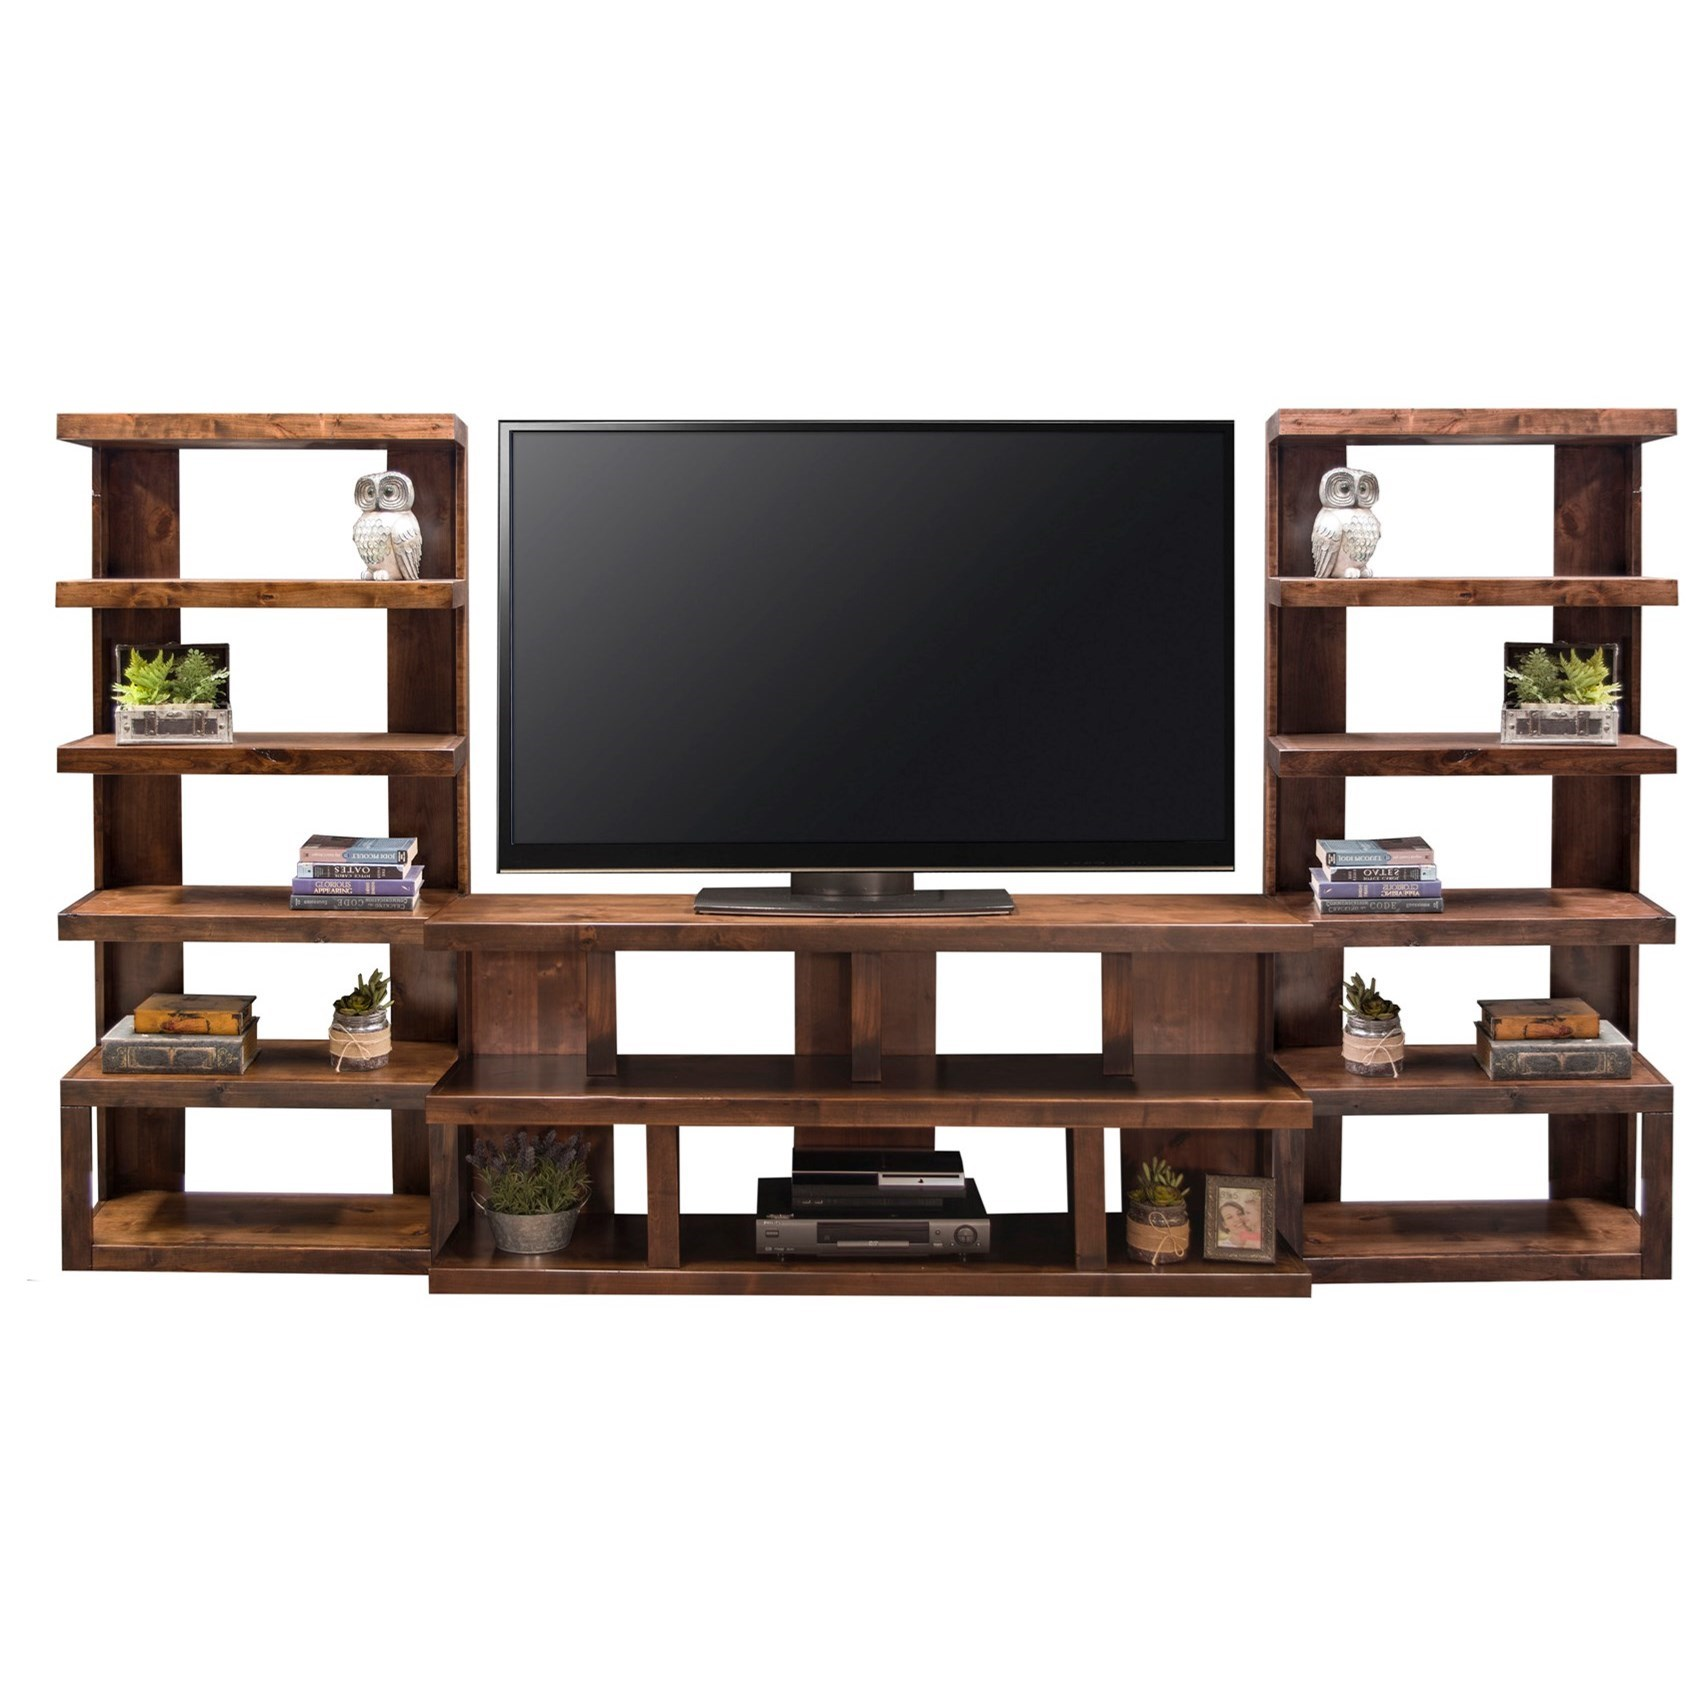 Exceptionnel Legends Furniture Sausalito Modern Entertainment Wall Unit   Item Number:  SL1230 WKY+2x3976